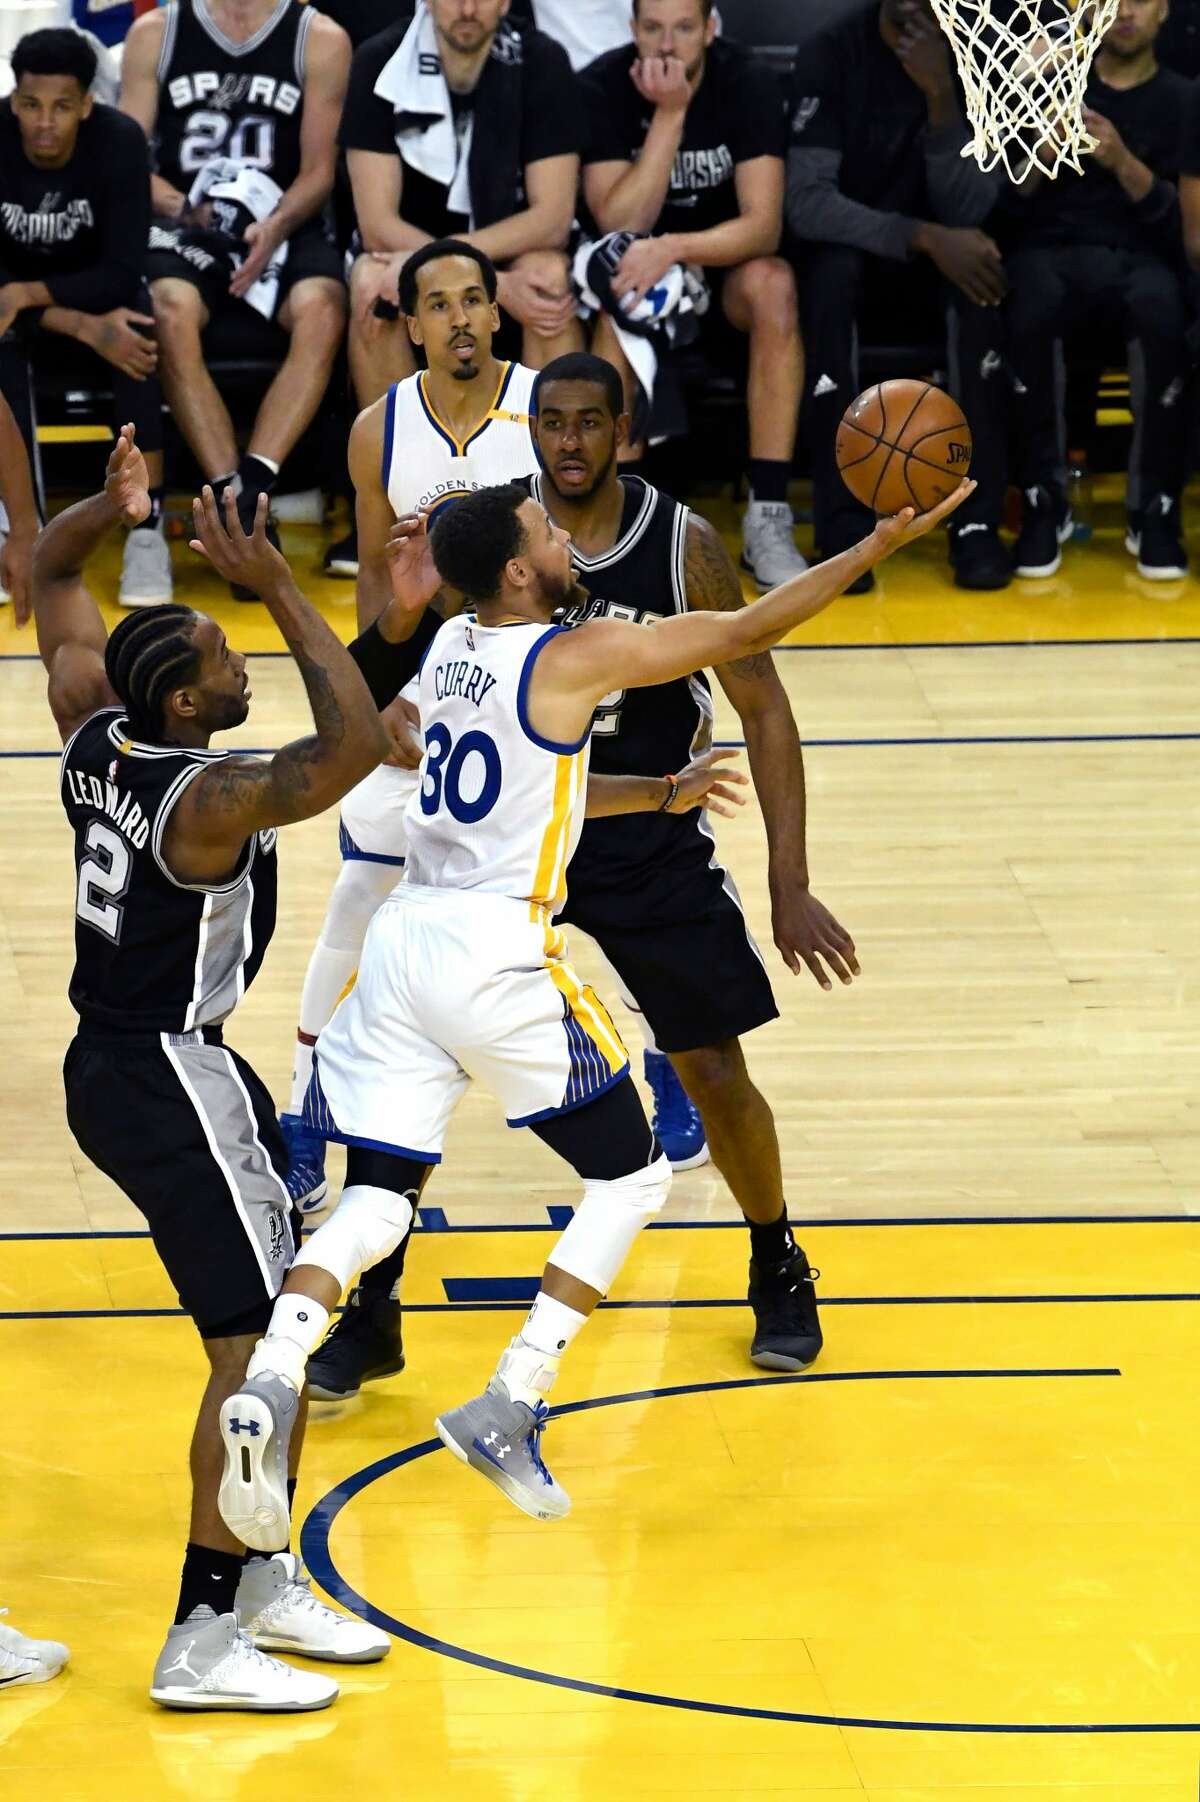 OAKLAND, CA - MAY 14: Stephen Curry #30 of the Golden State Warriors attempts a shot against the San Antonio Spurs during Game One of the NBA Western Conference Finals at ORACLE Arena on May 14, 2017 in Oakland, California. NOTE TO USER: User expressly acknowledges and agrees that, by downloading and or using this photograph, User is consenting to the terms and conditions of the Getty Images License Agreement. (Photo by Thearon W. Henderson/Getty Images)